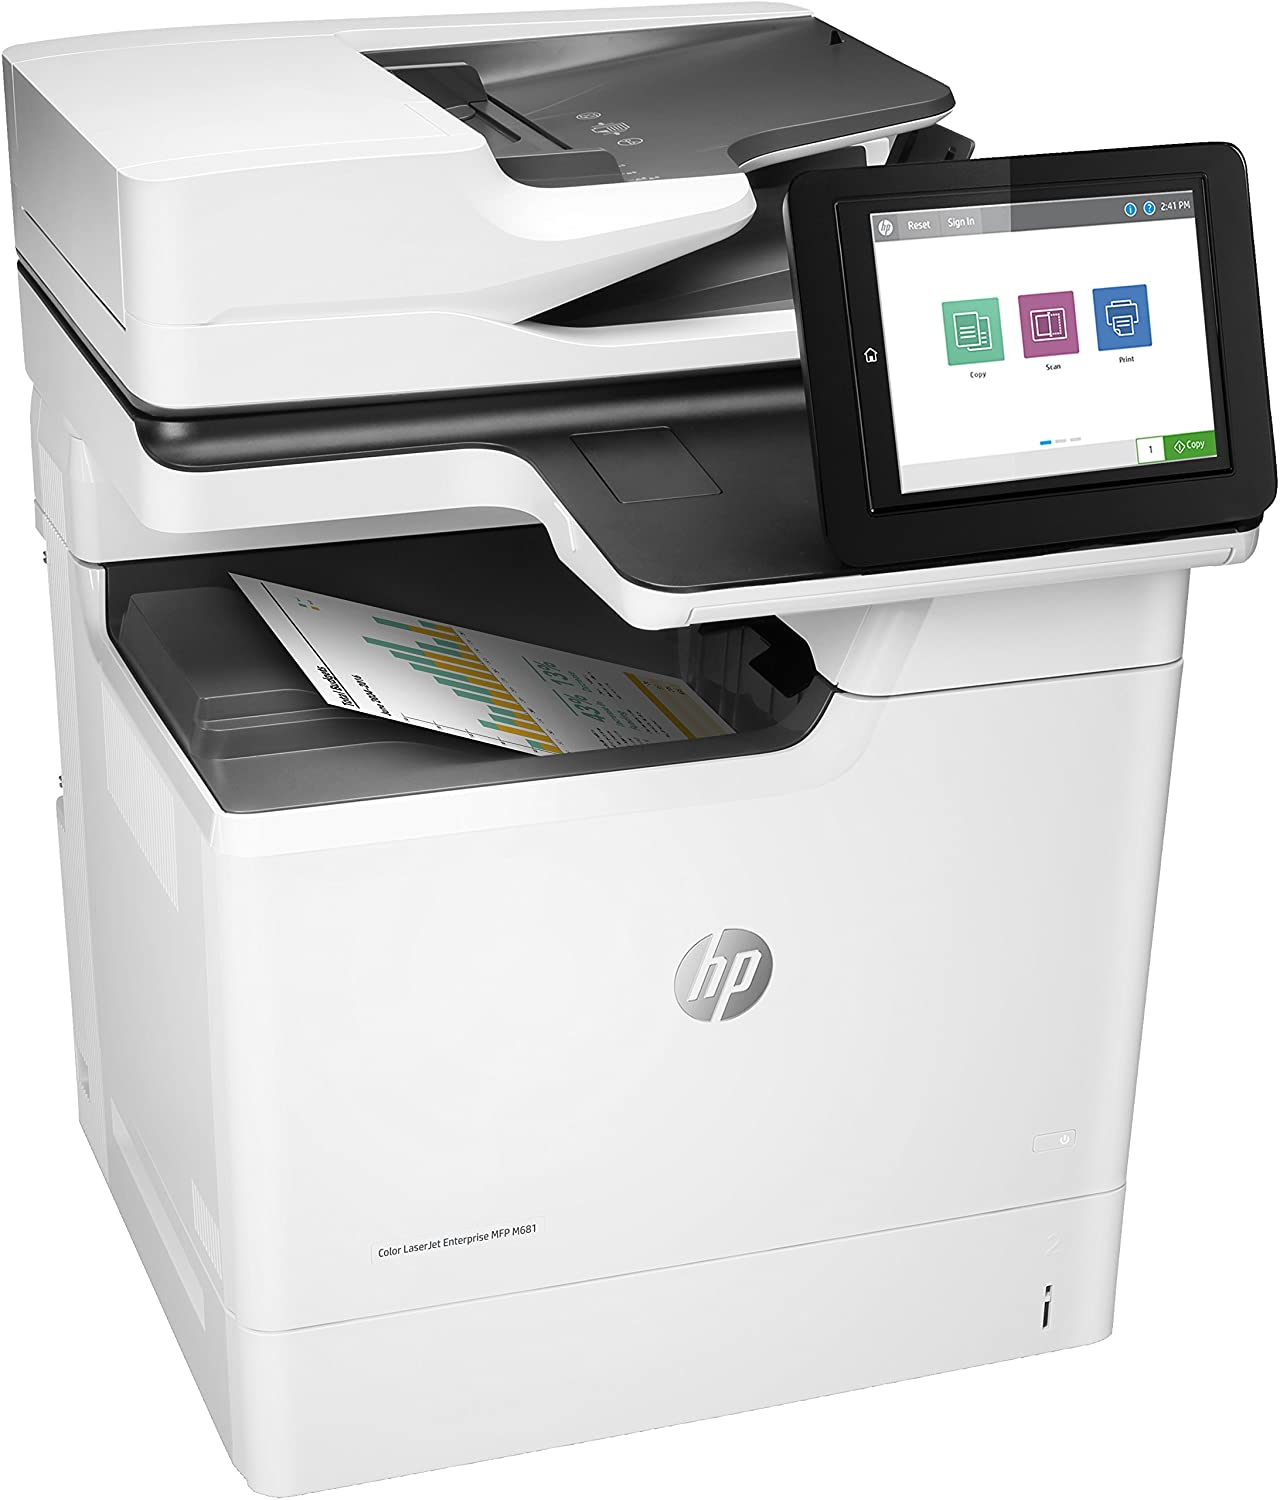 HP Color Laserjet Enterprise MFP M681dh 1200 x 1200DPI Laser ...